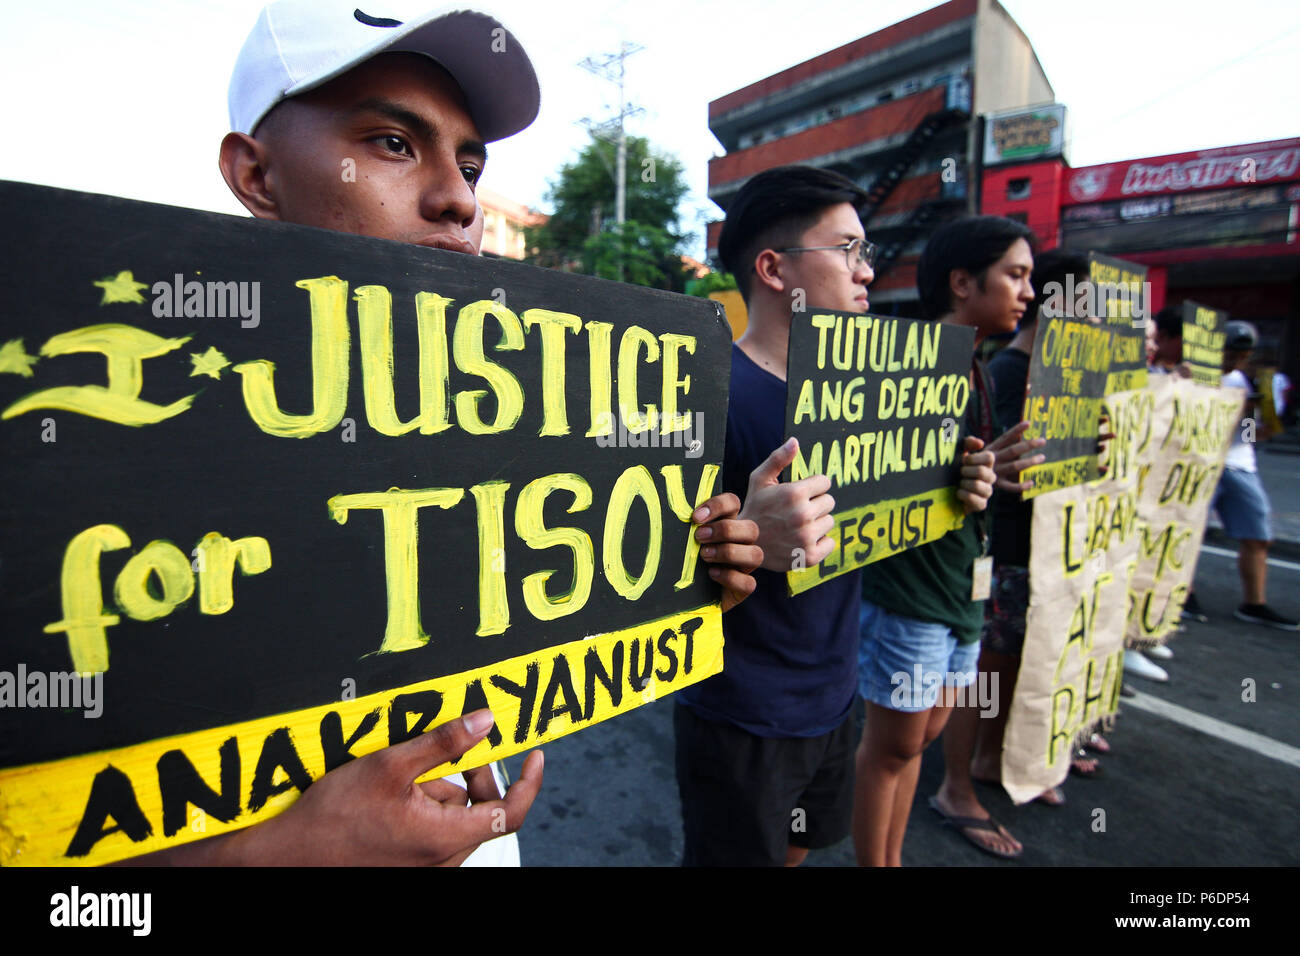 A young man seen holding a placard during the protest. Students from the University of Santo Thomas staged a lightning rally near the presidential palace in Mendiola, Friday afternoon, against the recent deaths of Catholic priests. It was Part of the nationwide Black Friday protests, the students called for justice for Tisoy Argoncillo's death while in police detention for loitering. The group also called for the end of the Martial Law in Mindanao. - Stock Image